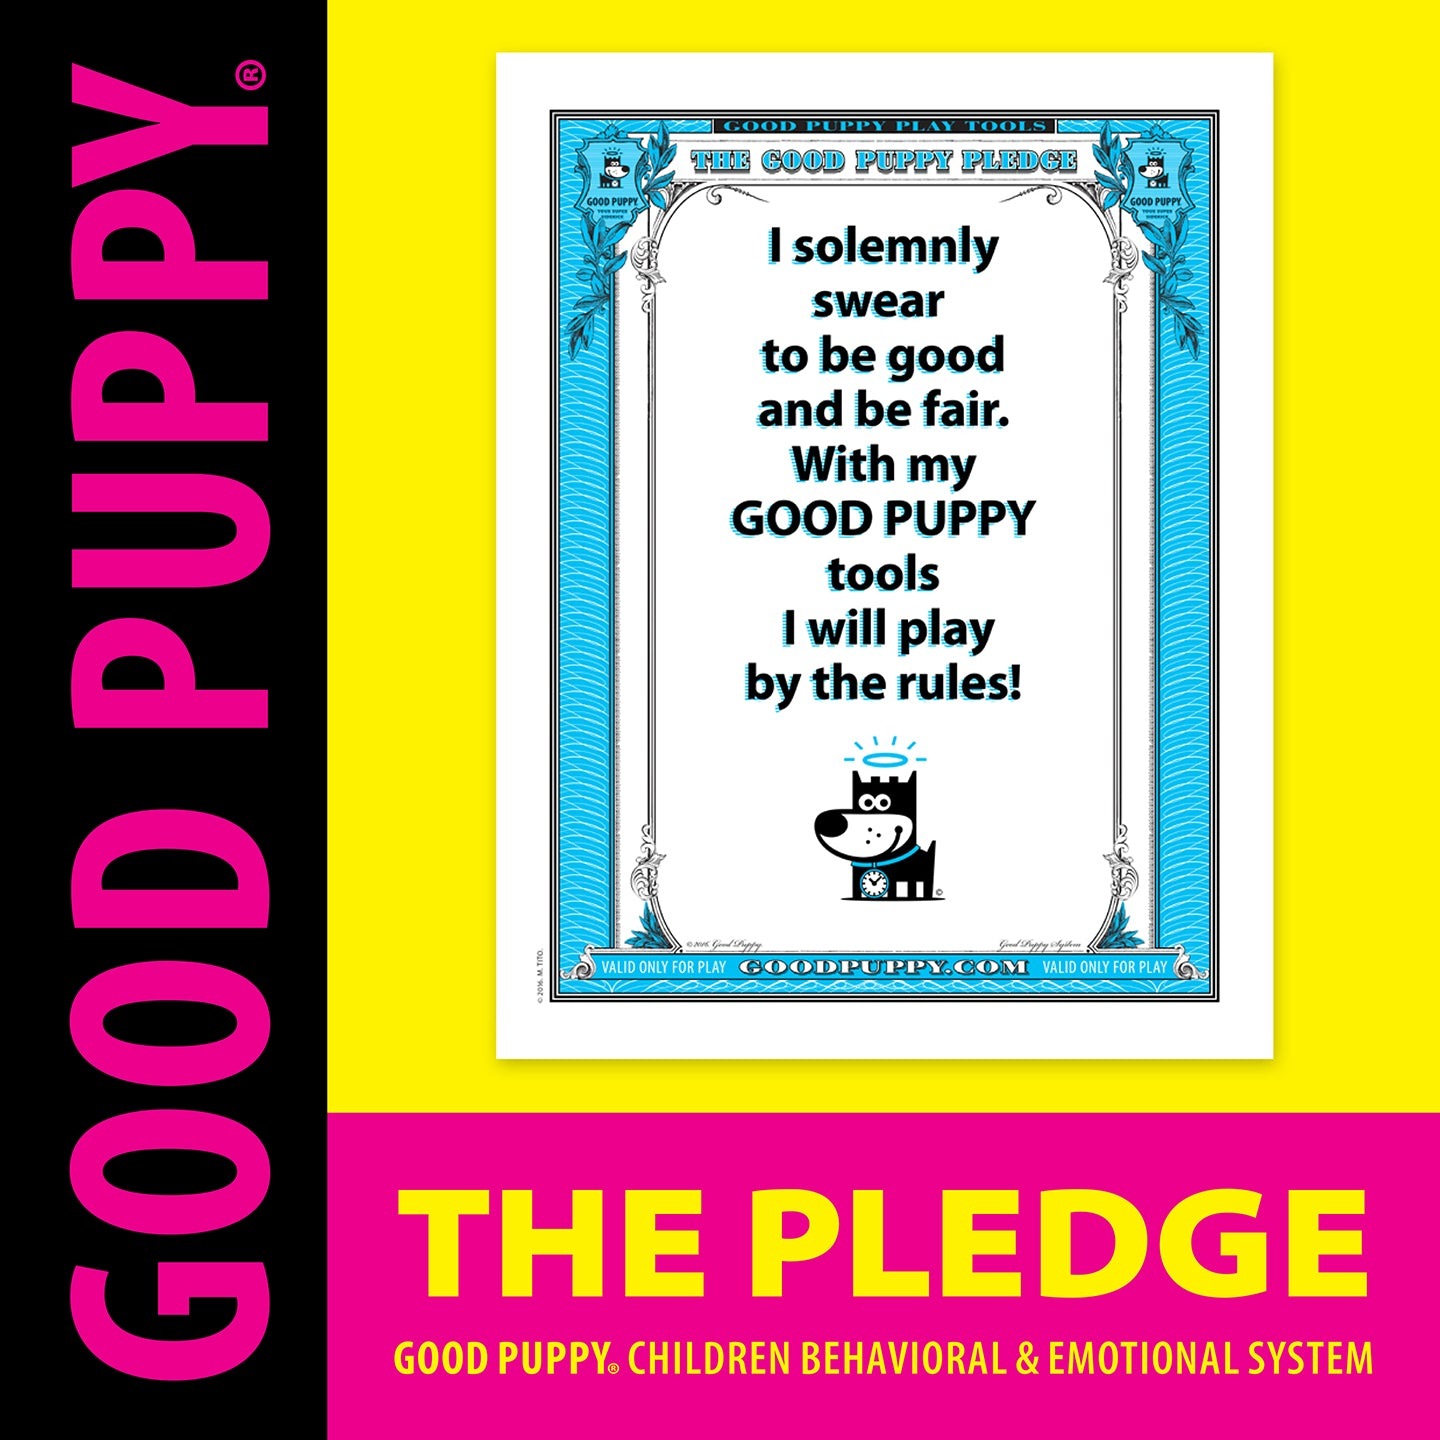 Printable PDF . The Pledge